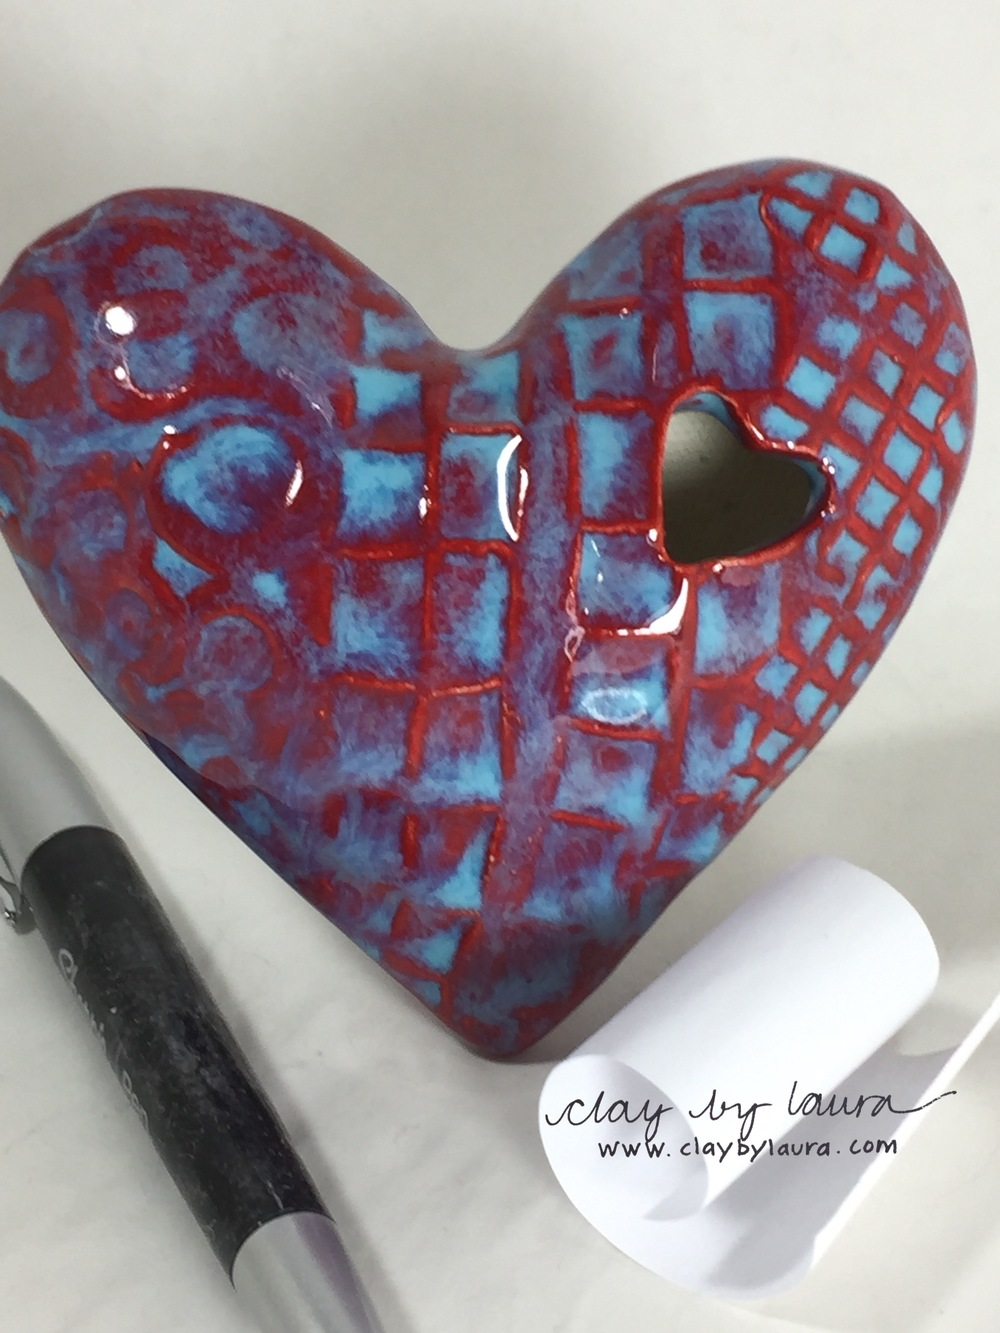 Store 'heartfelt' messages in this heart-shaped clay container. Offered in three color choices, this gift of love can be purchased and shipped for $38.00 (pen is not included).